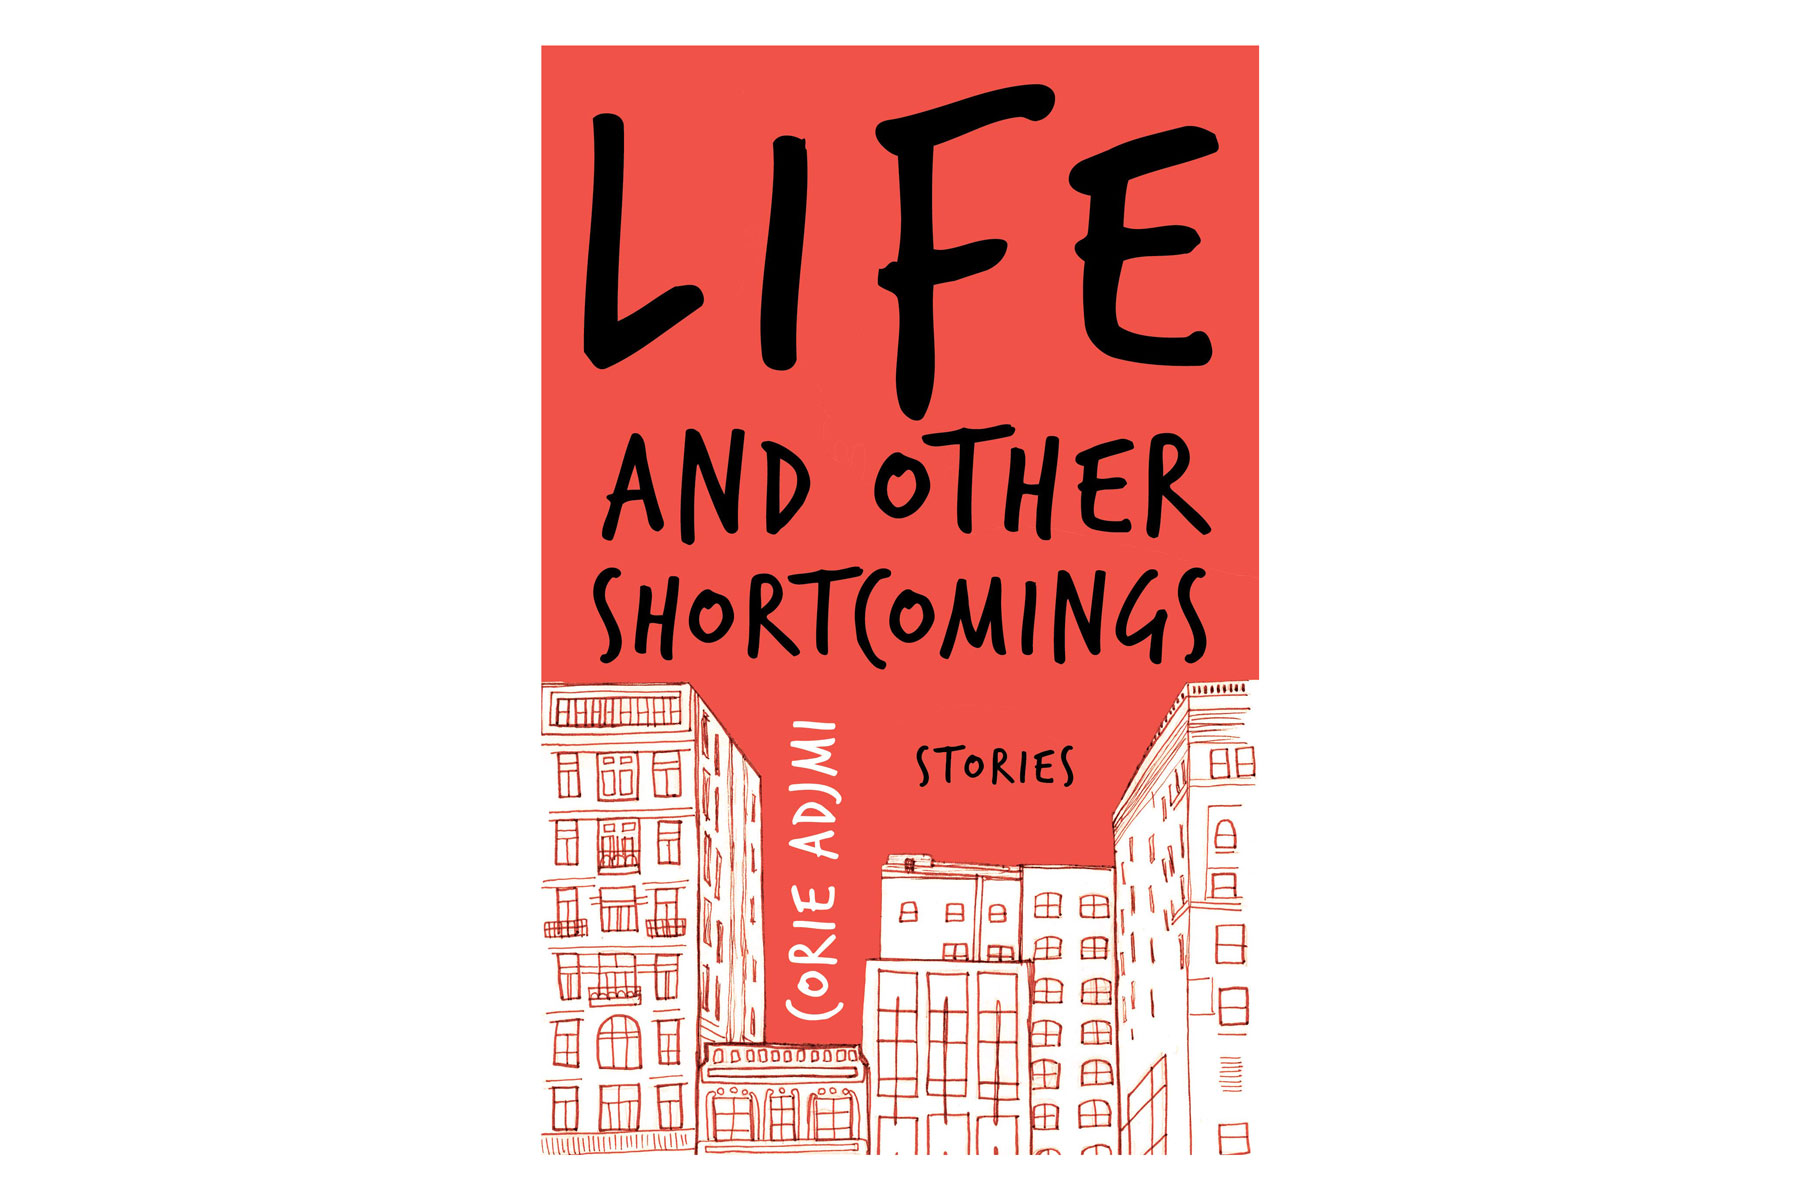 Life and Other Shortcomings: Stories  by Corie Adjmi